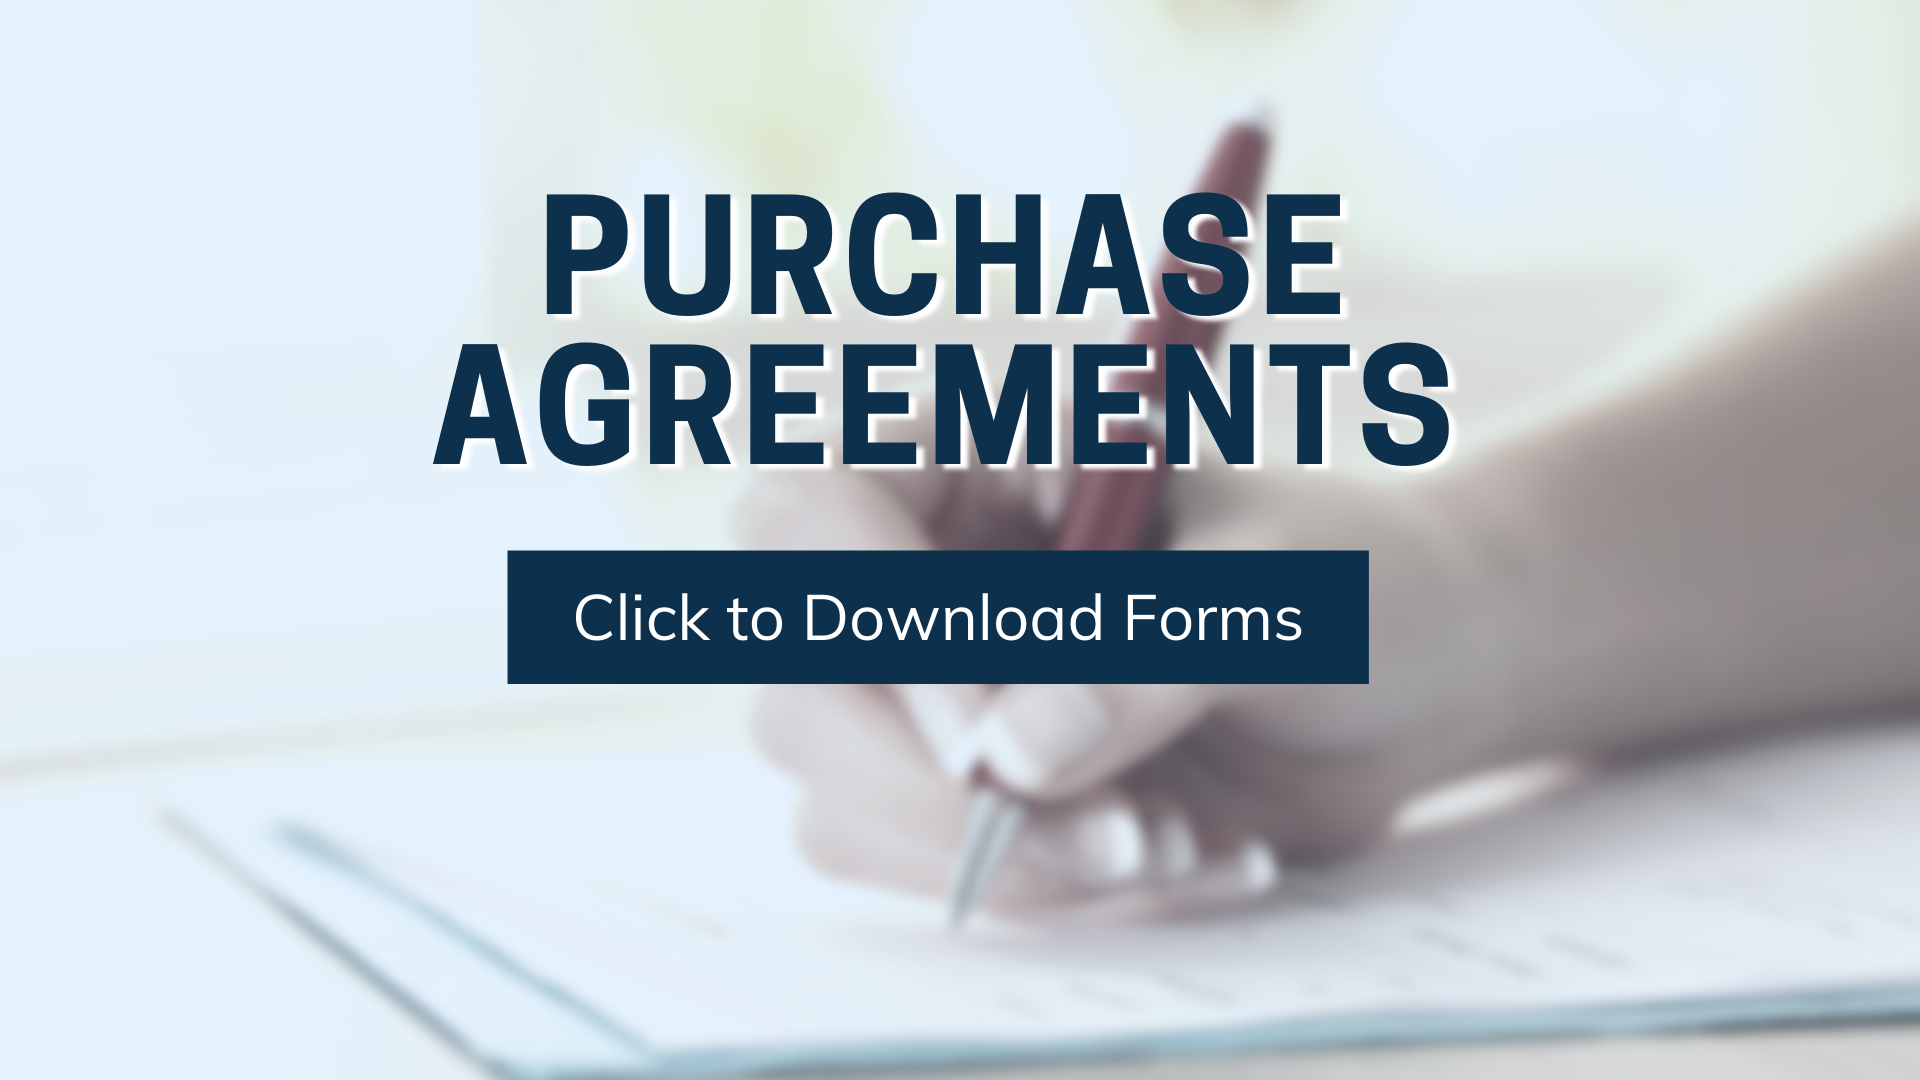 Real Estate Sample Forms Application forms Lease Addendums policies and agreements 5 | Ken McElroy Image